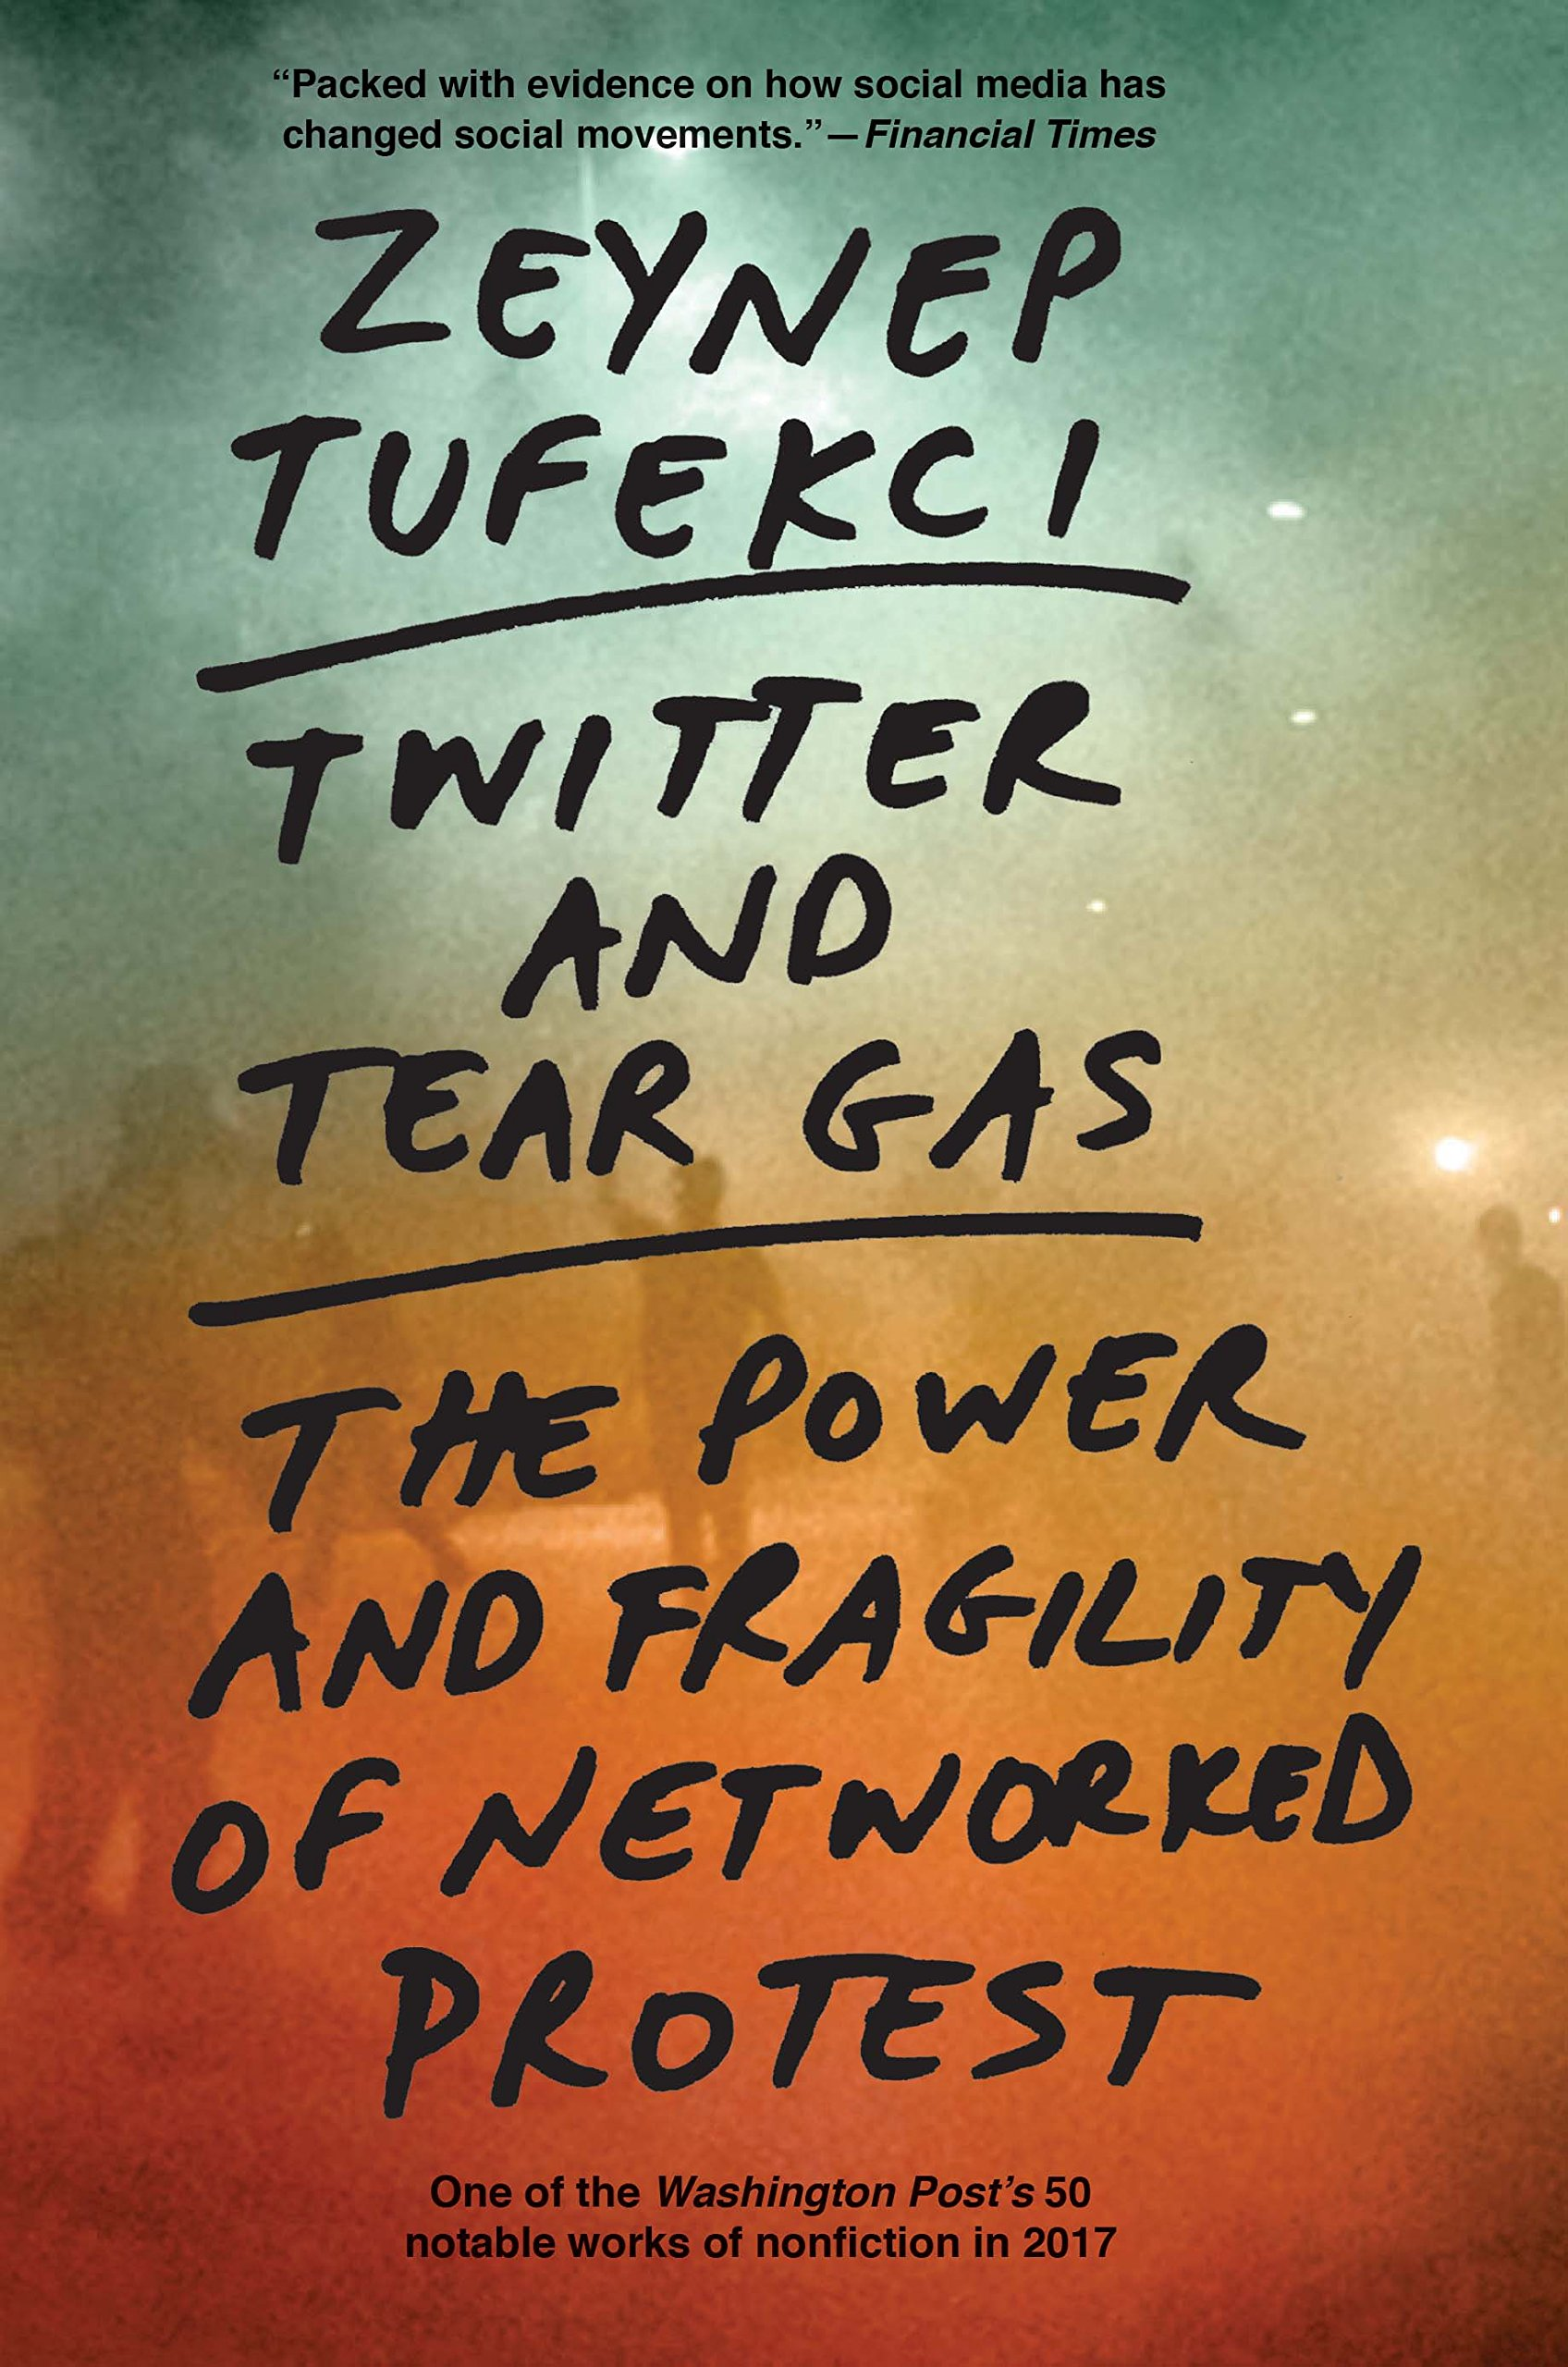 Download Twitter and Tear Gas: The Power and Fragility of Networked Protest PDF